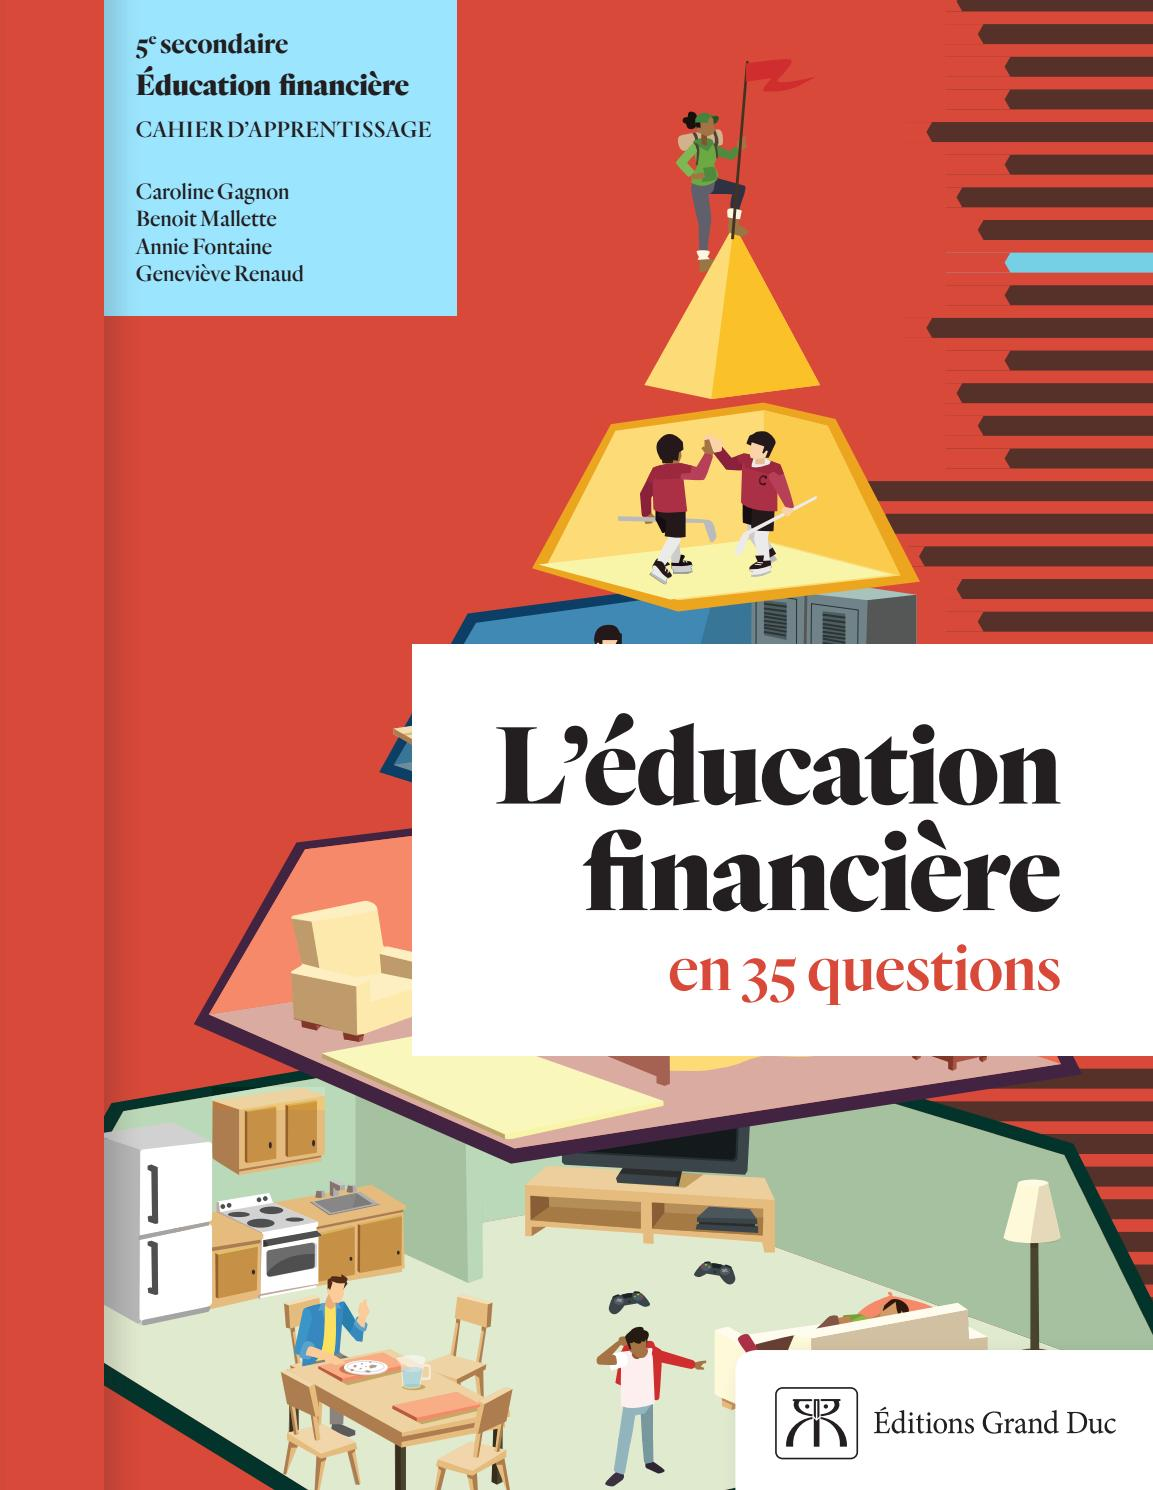 Educ Financiere Cahier Ch01 Quest 1 5 E1 Simple By Editions Grand Duc